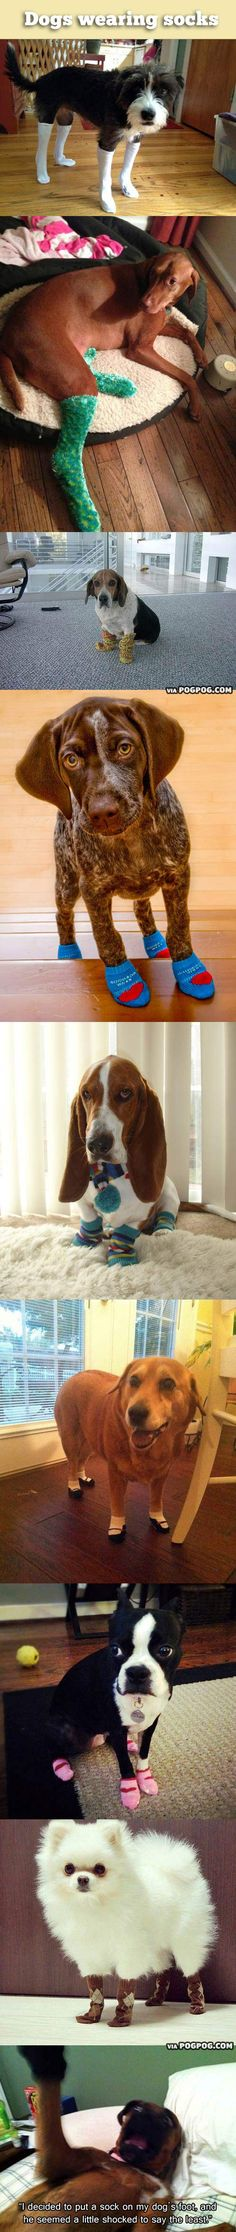 Dogs wearing socks are one of the cutest & funniest things in the world…